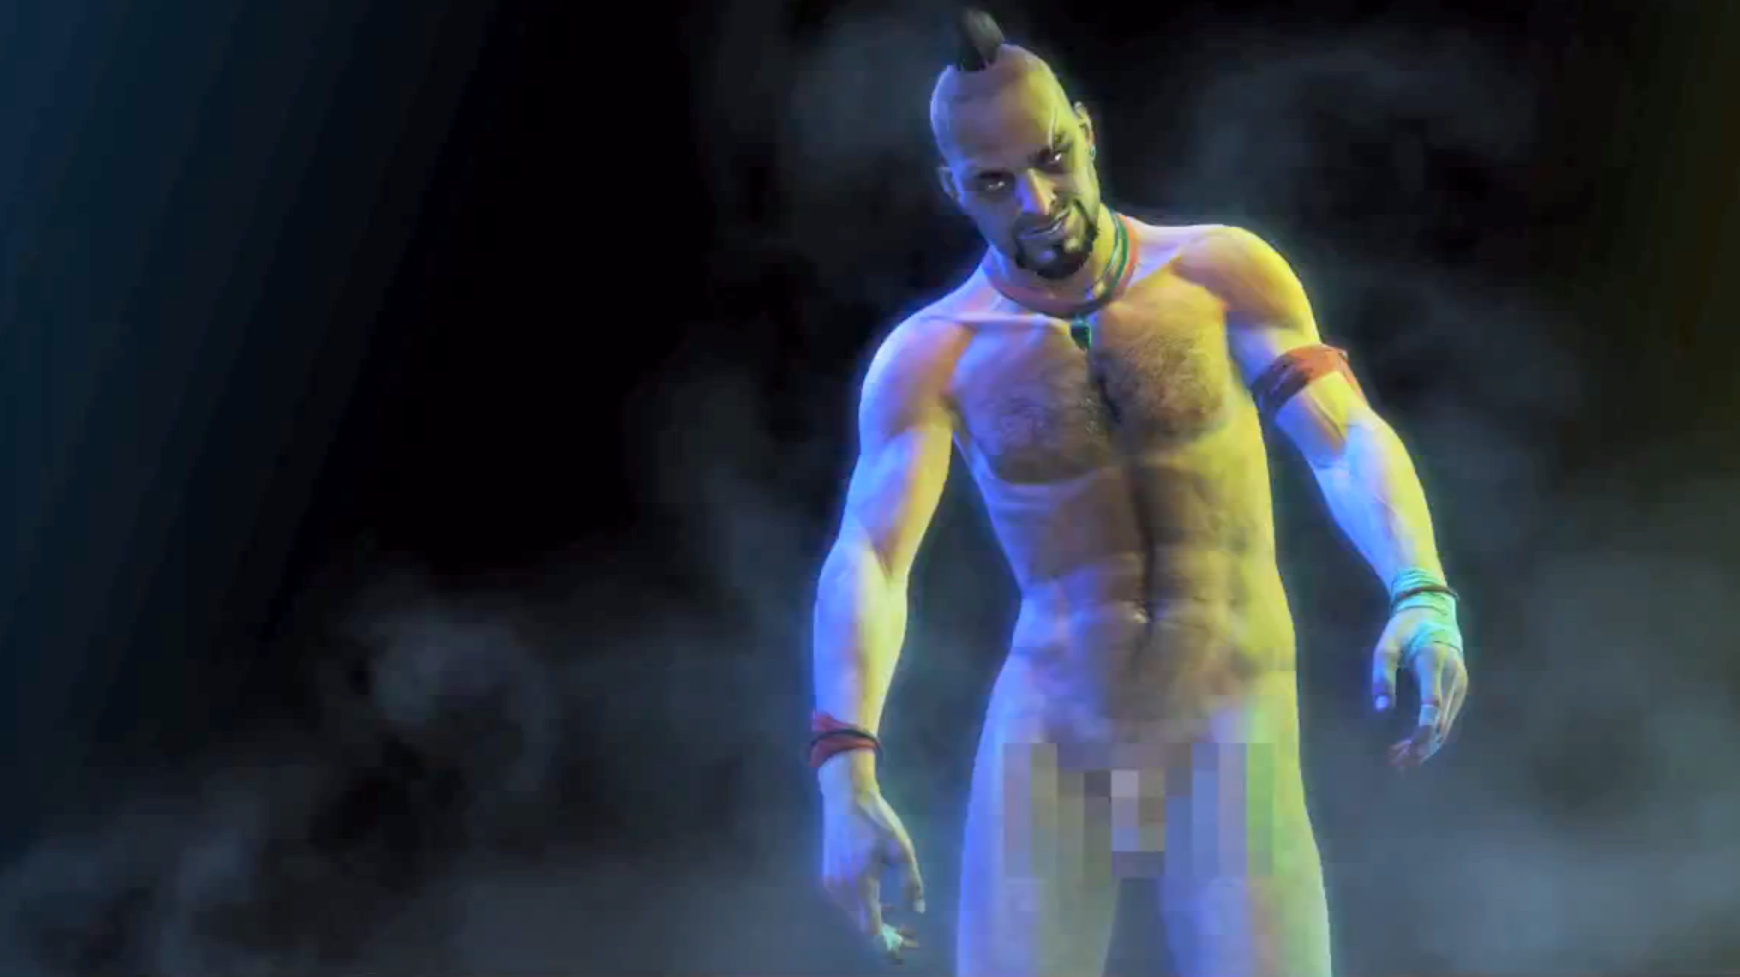 Naked male video game characters seems magnificent